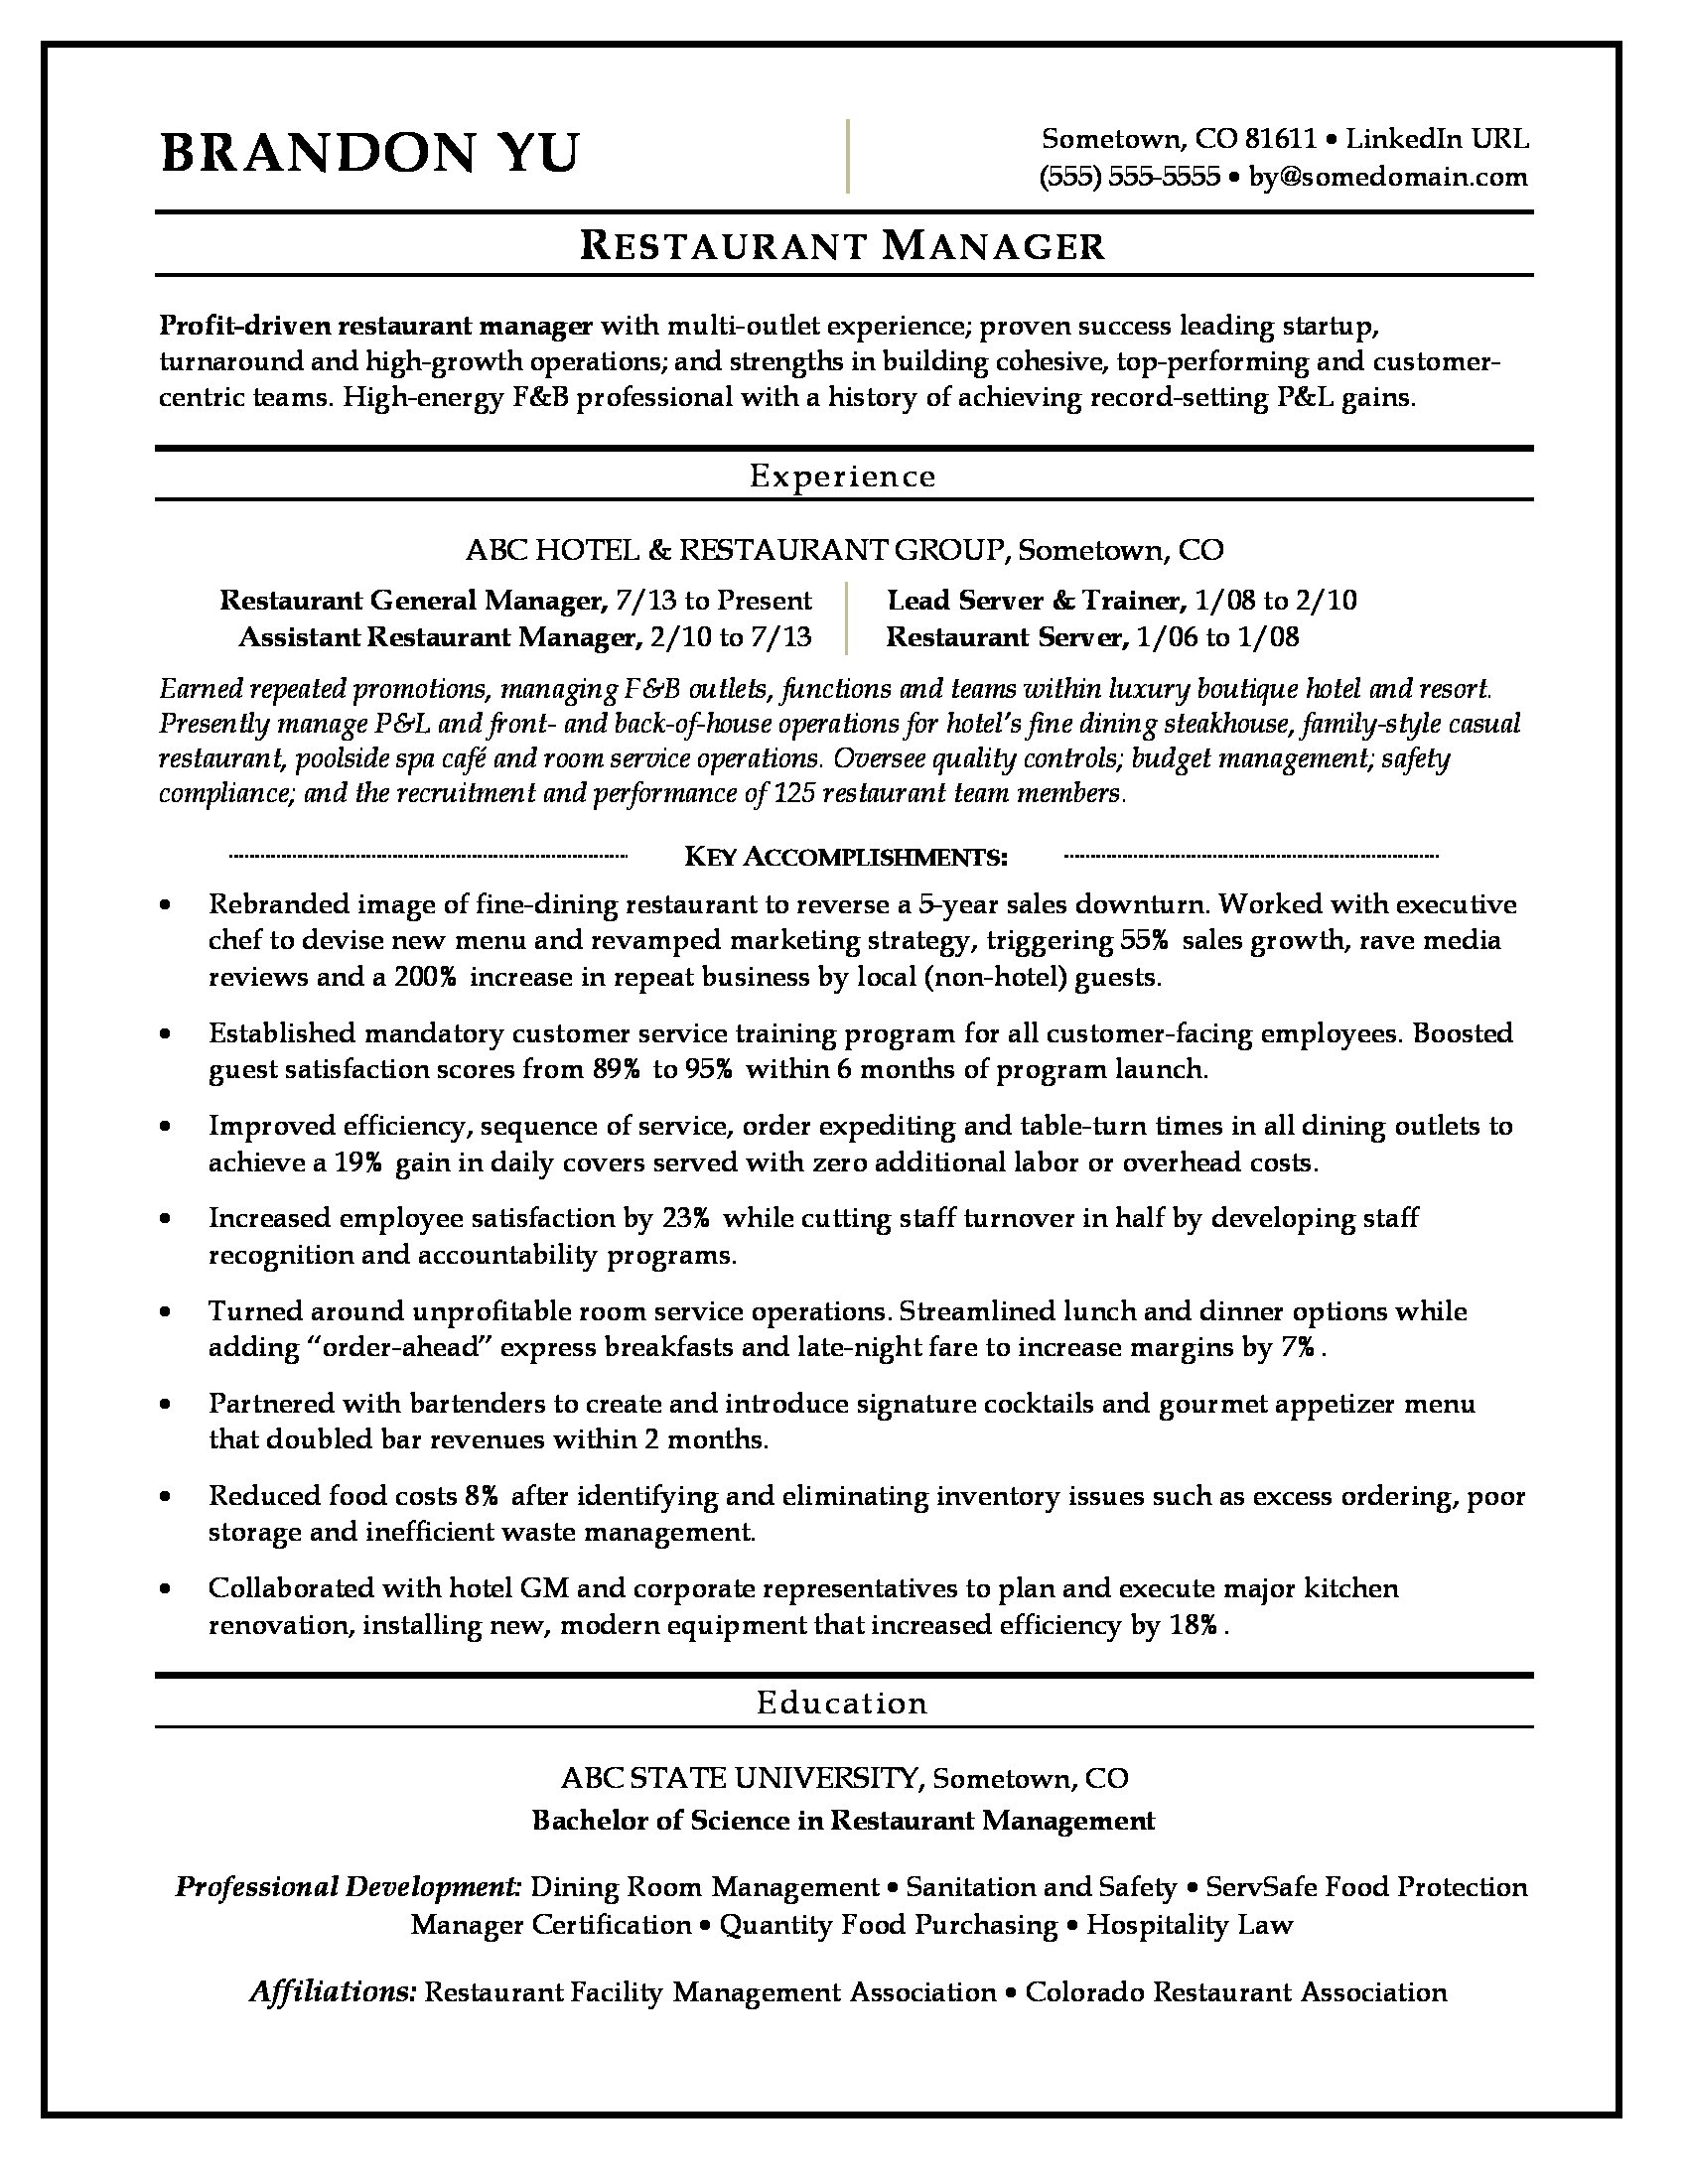 Restaurant Manager Resume Sample Monster